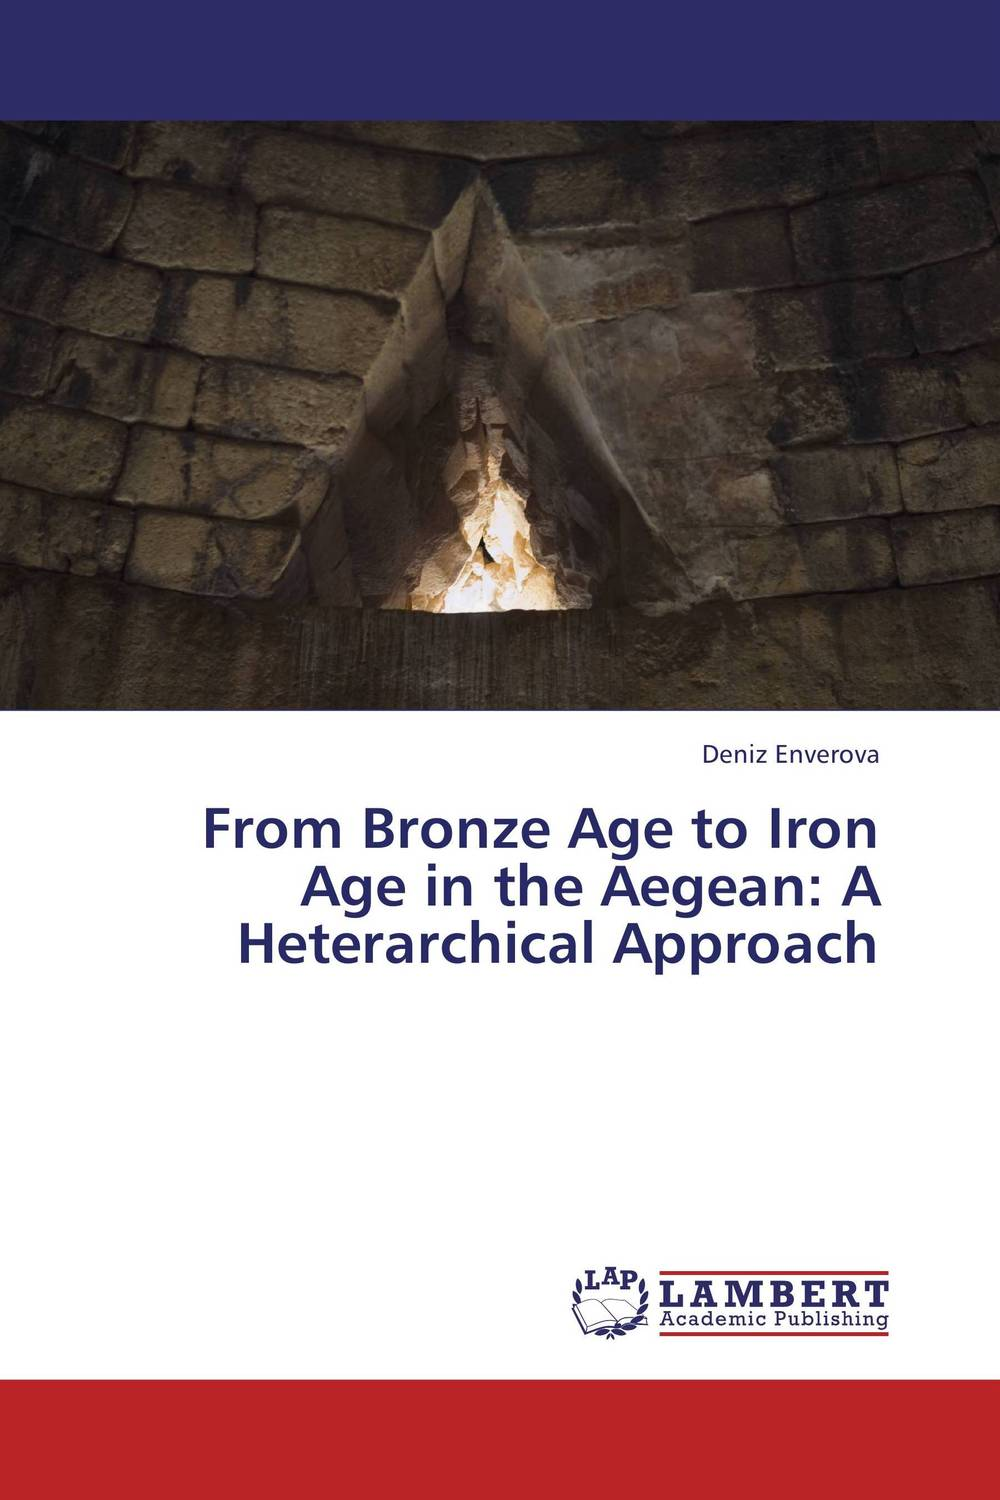 From Bronze Age to Iron Age in the Aegean: A Heterarchical Approach middle to late bronze age transition in the southern urals russia